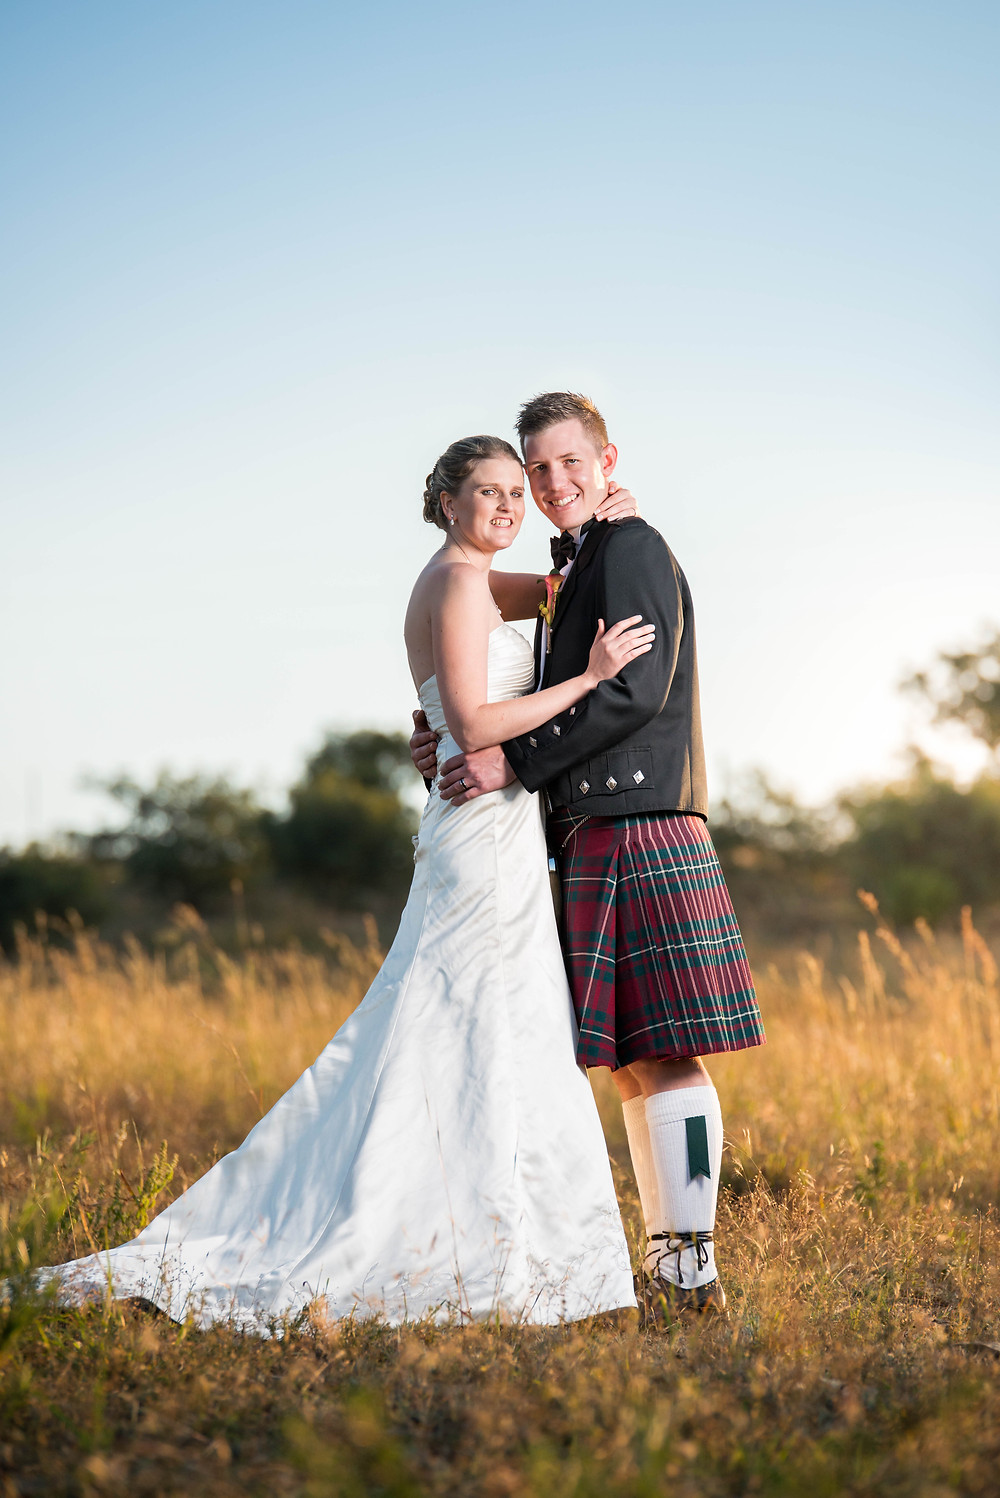 professional wedding photography in Johannesburg